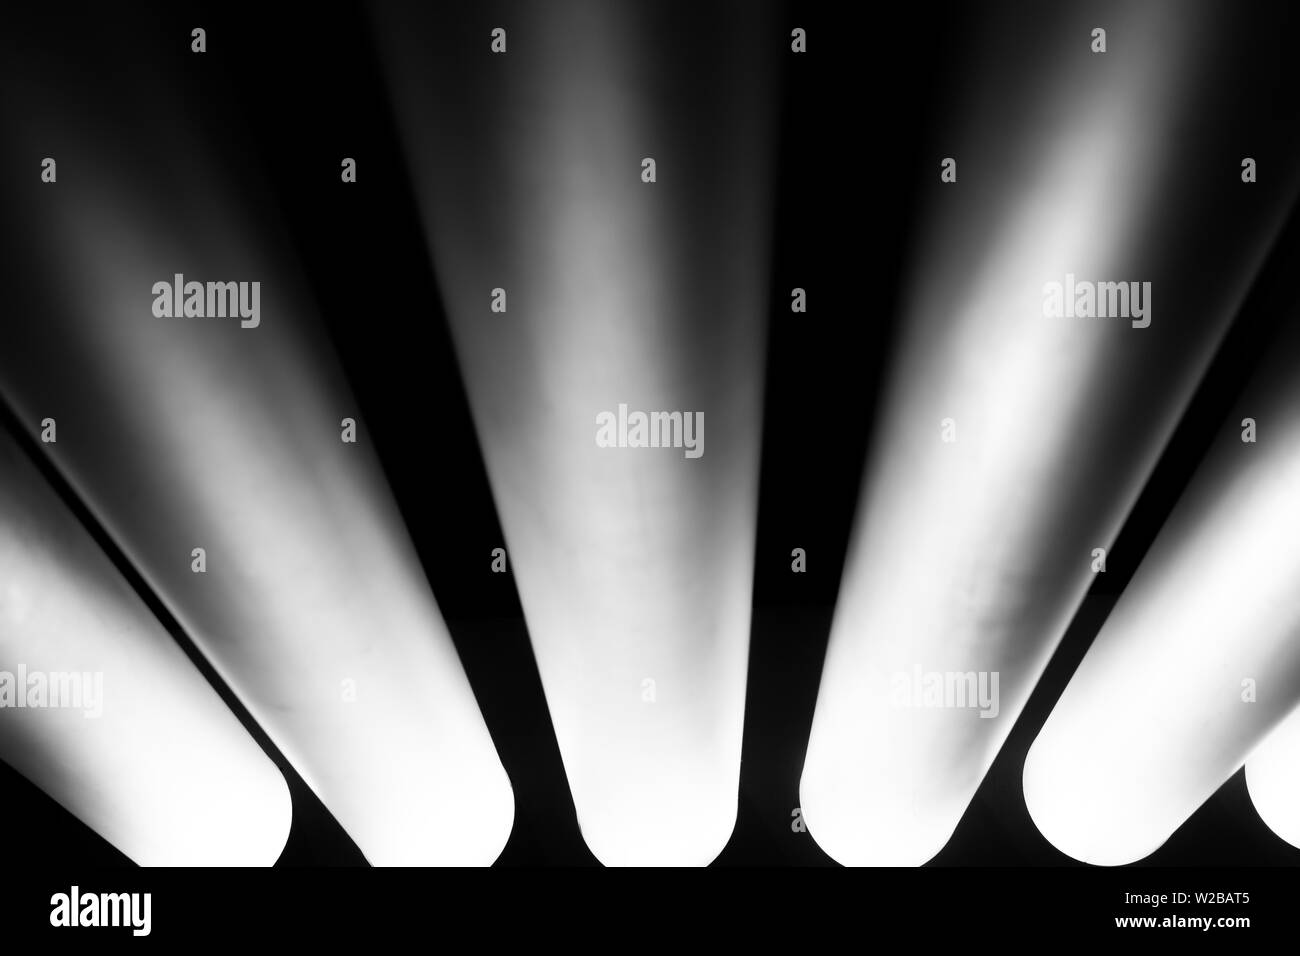 Neon Black And White Stock Photos Images Alamy